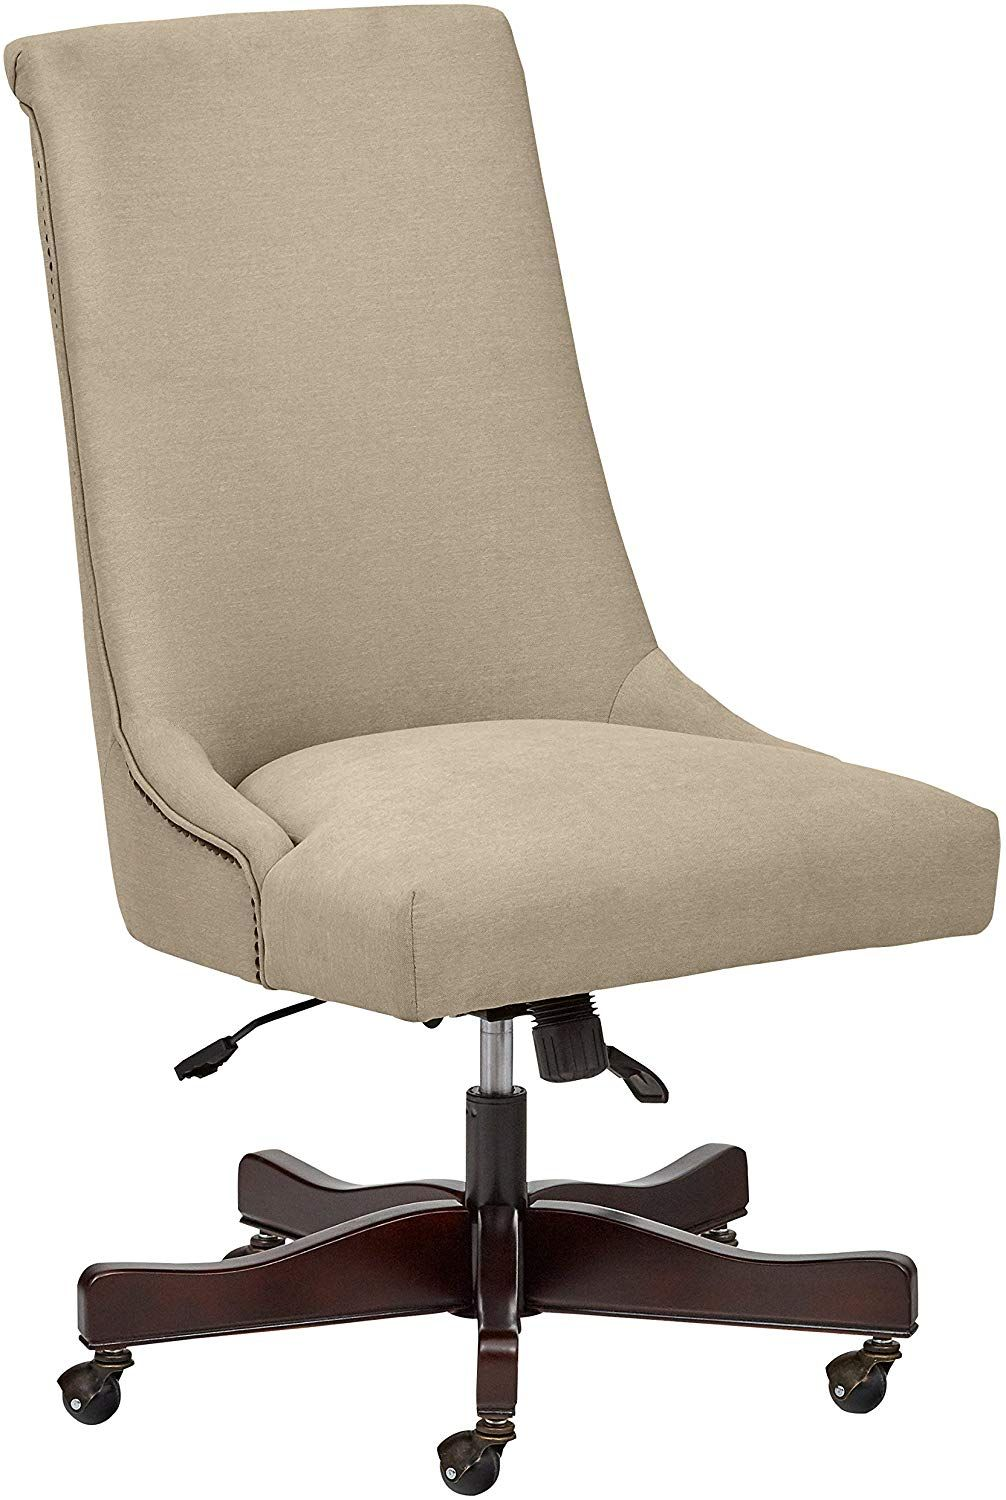 Stone Beam Nailhead Swivel Office Chair with Wheels, 28.4